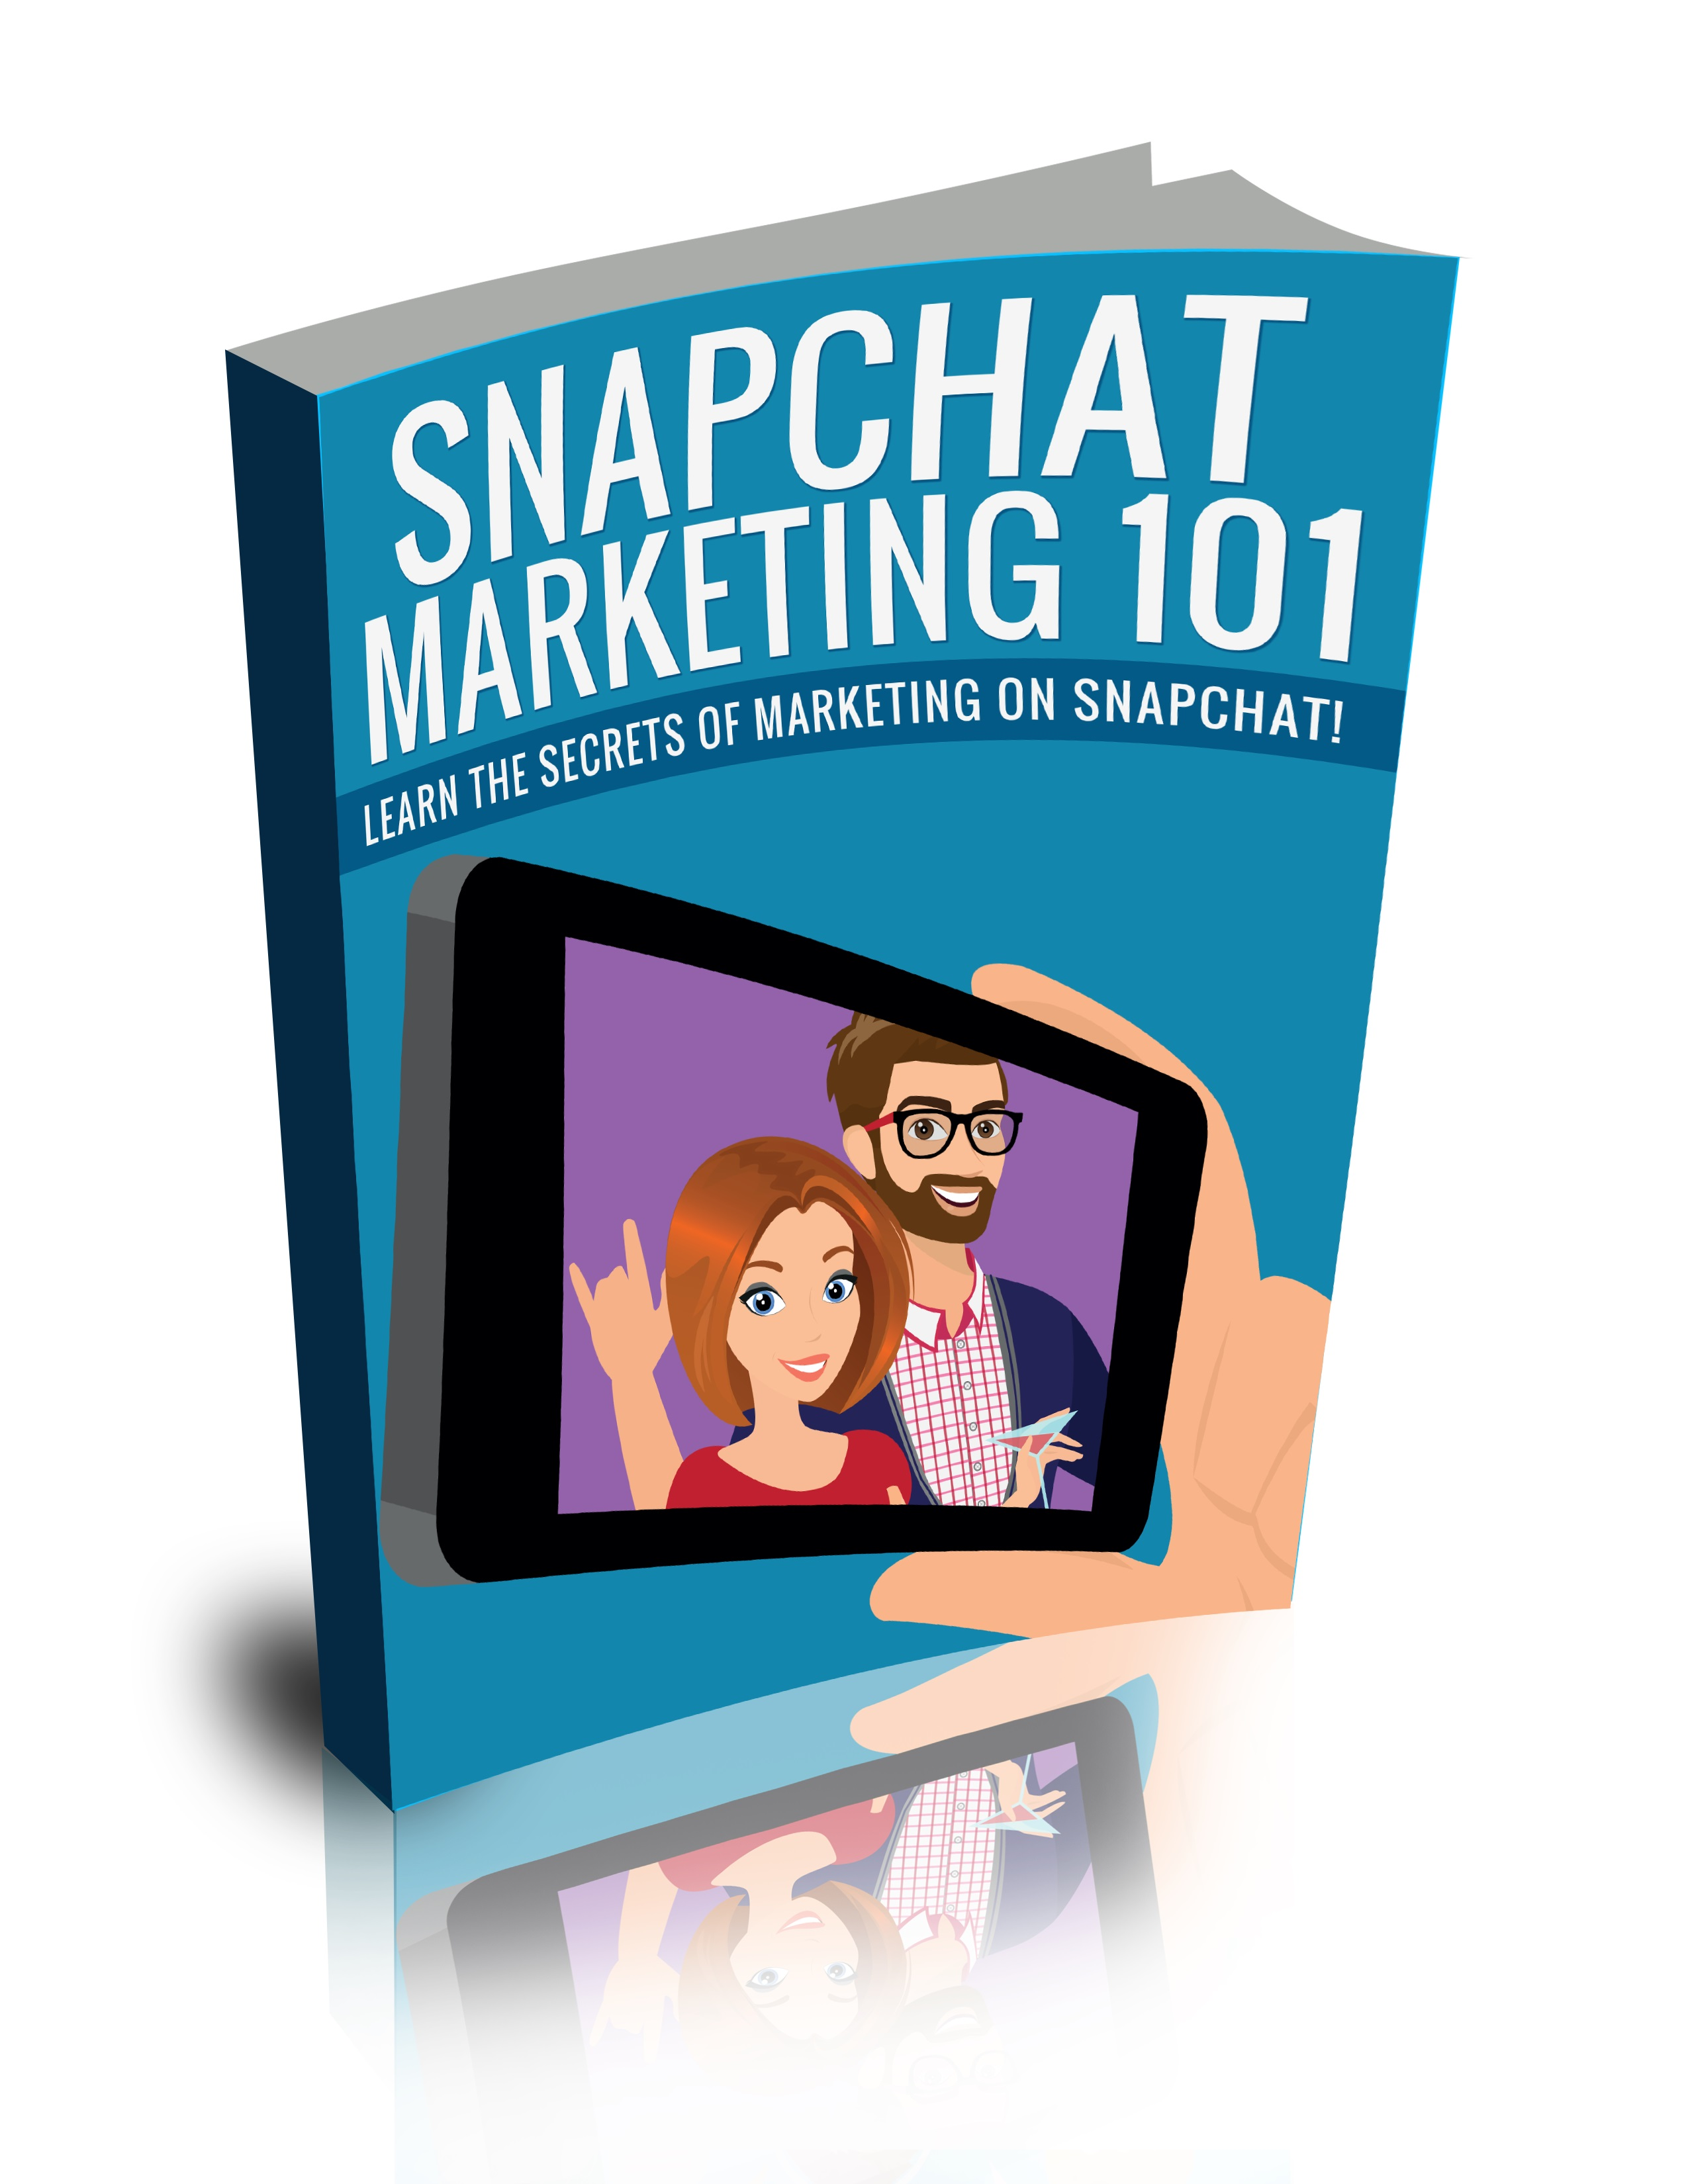 Snapchat Marketing 101 Package